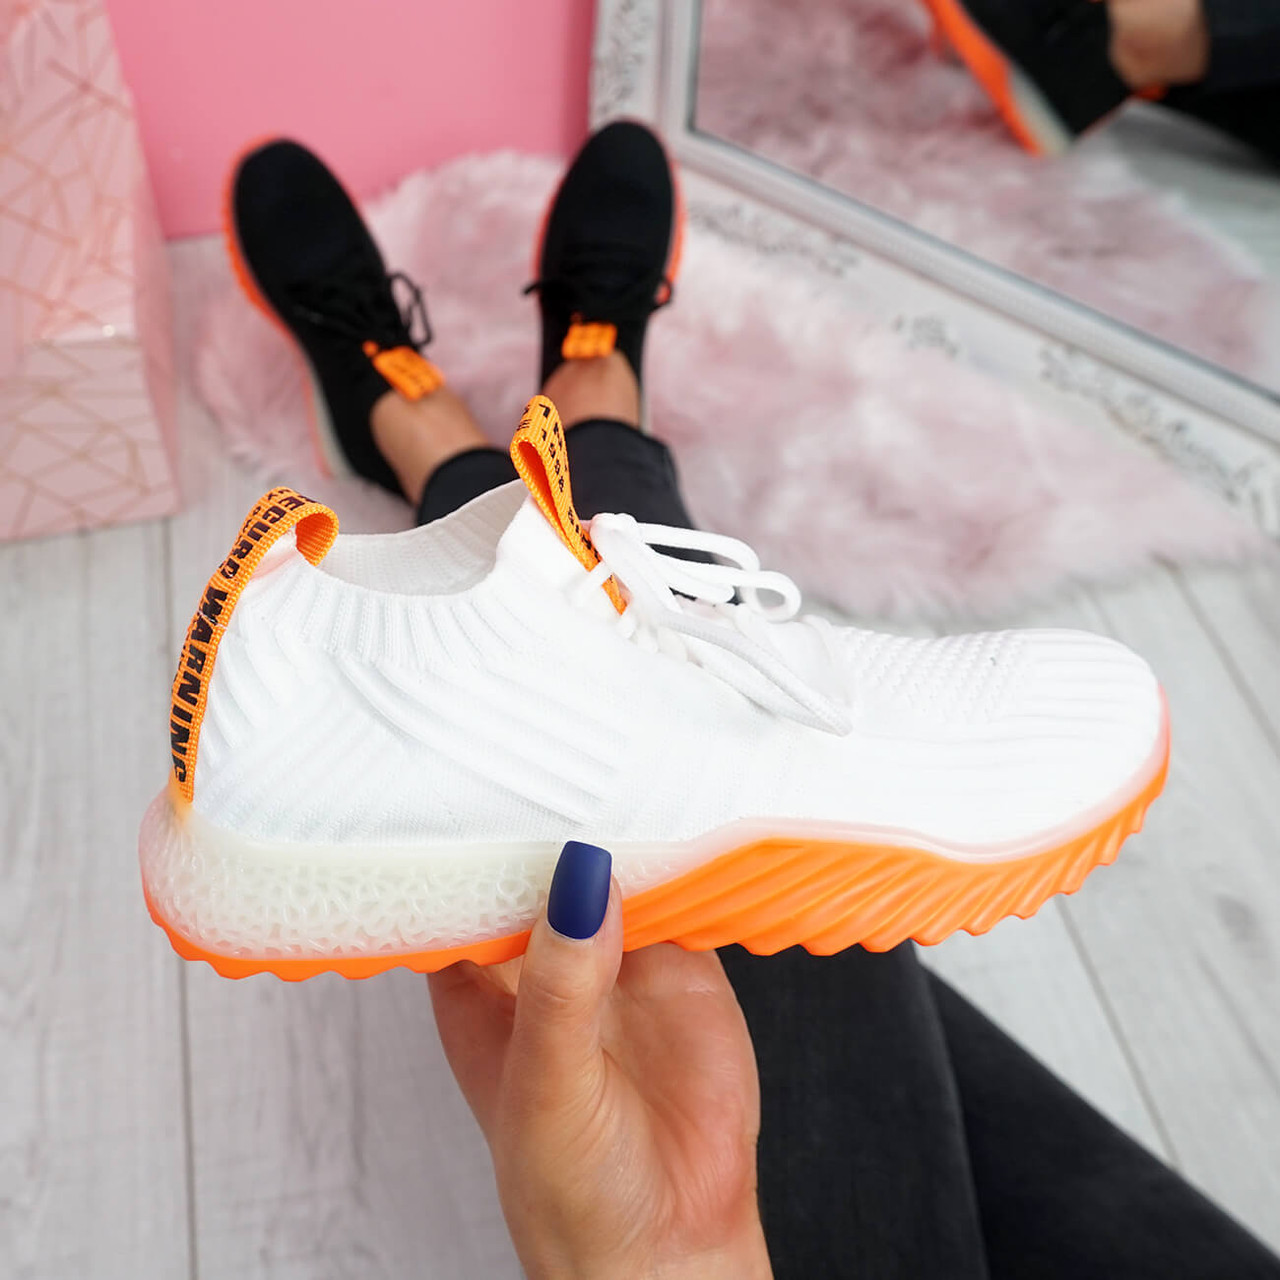 Ladies Summer Gym Running Walking Light Weight Trainers Lace Up Size 3 4 5 6 7 8